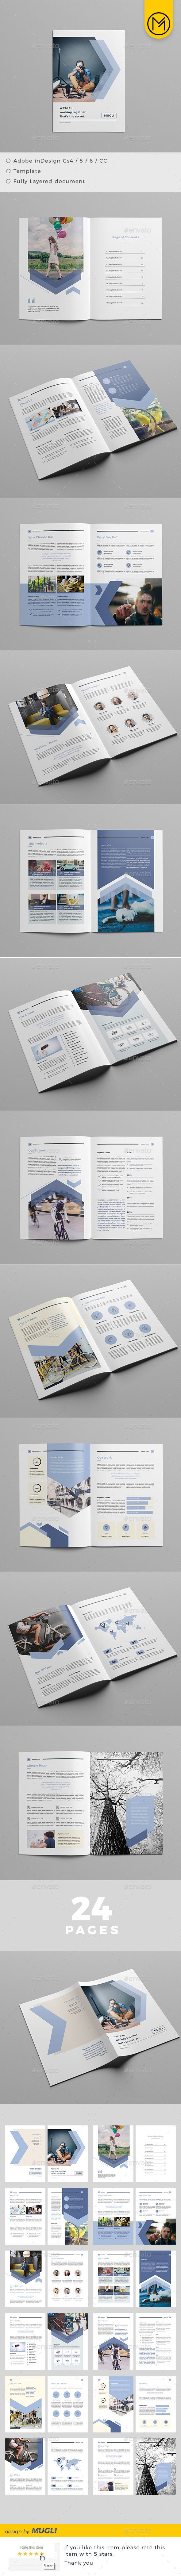 The Brochure | Brochure template, Brochures and Template